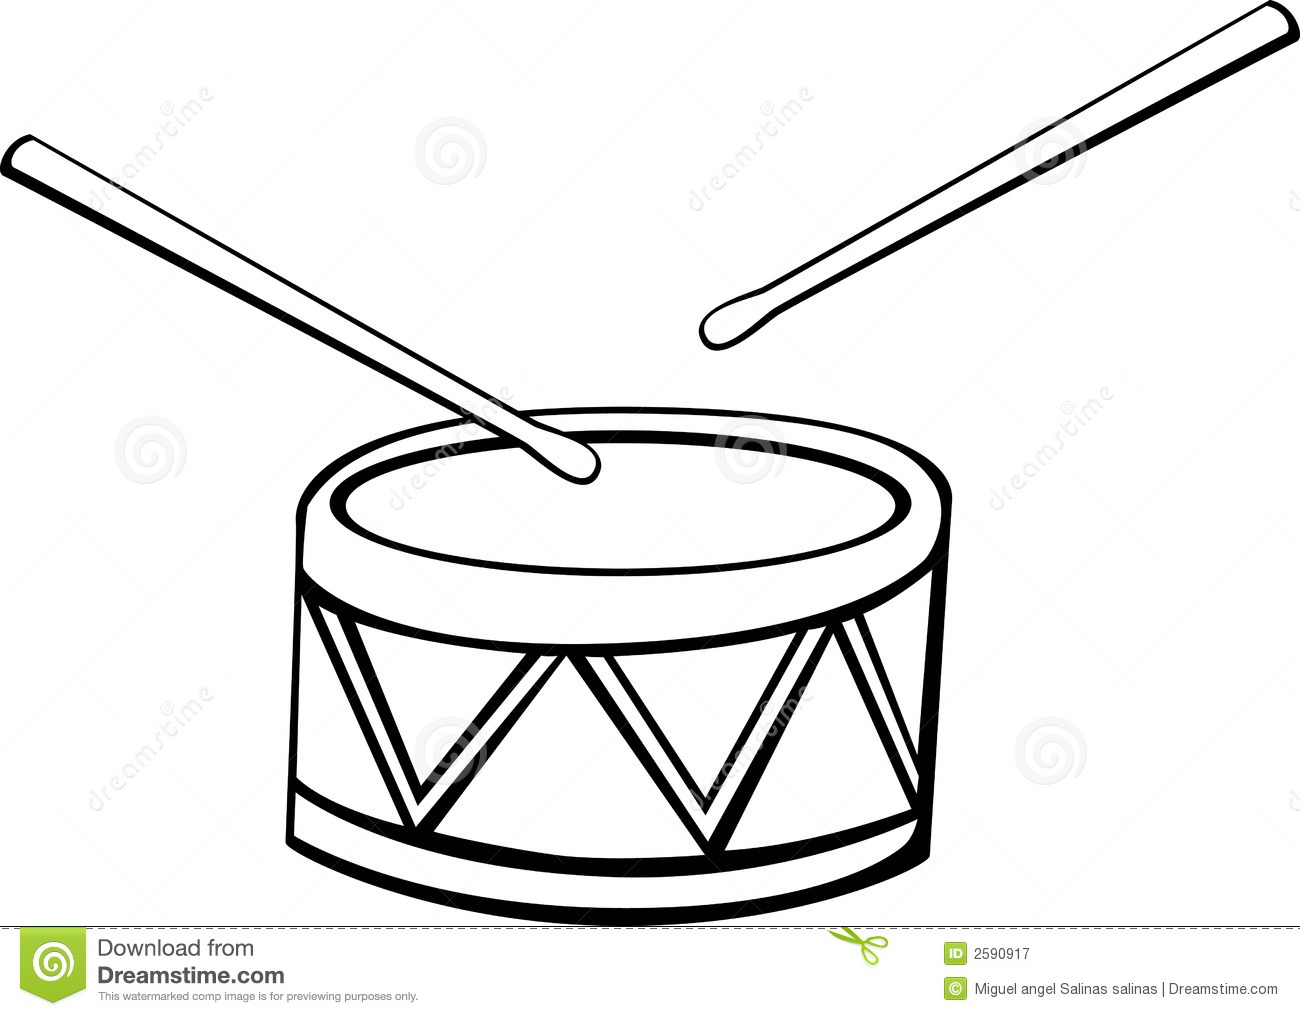 Drum vector illustration stock vector. Image of acoustic